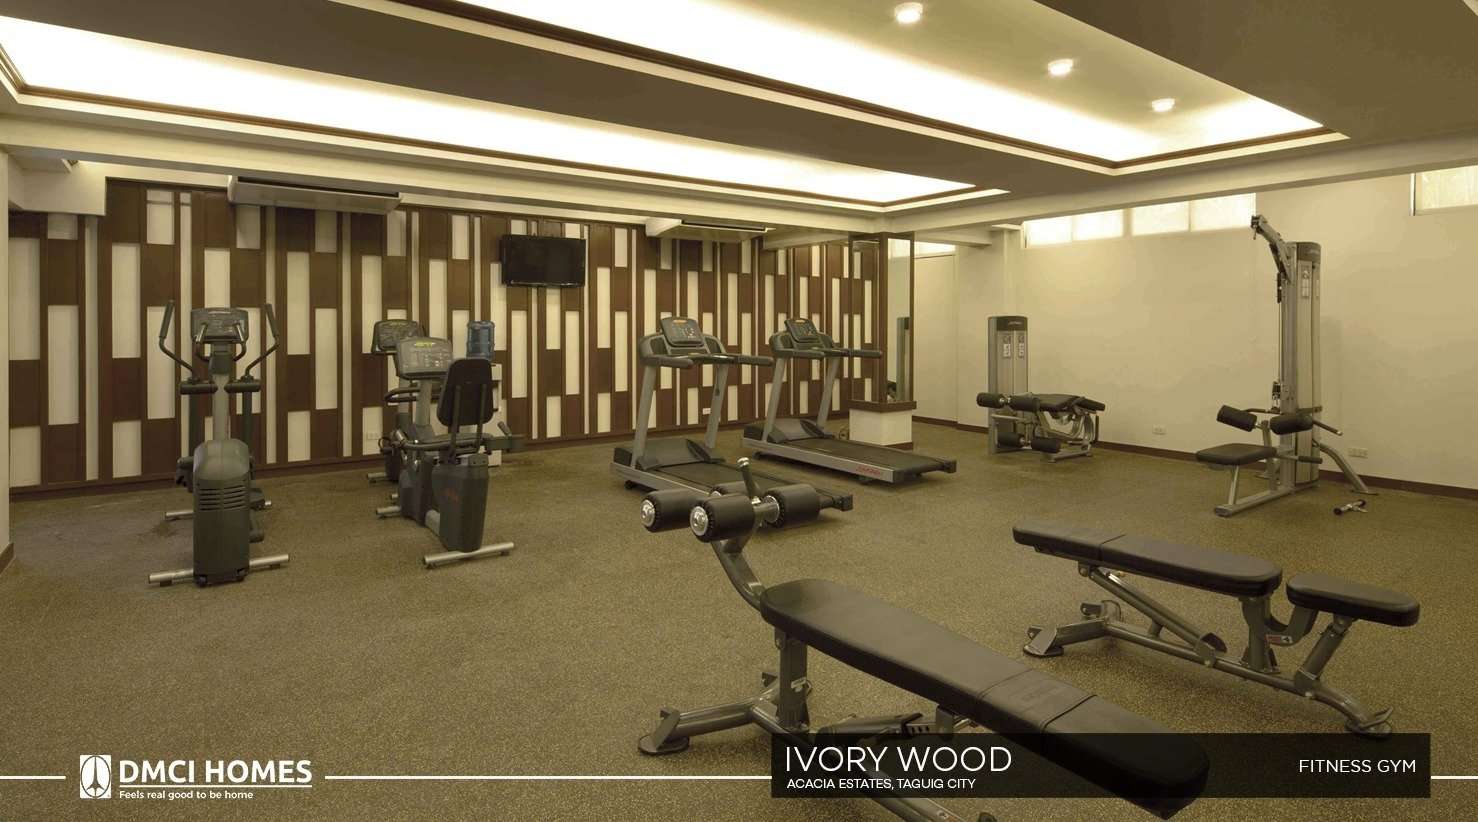 Ivory Wood-Fitness Gym-large